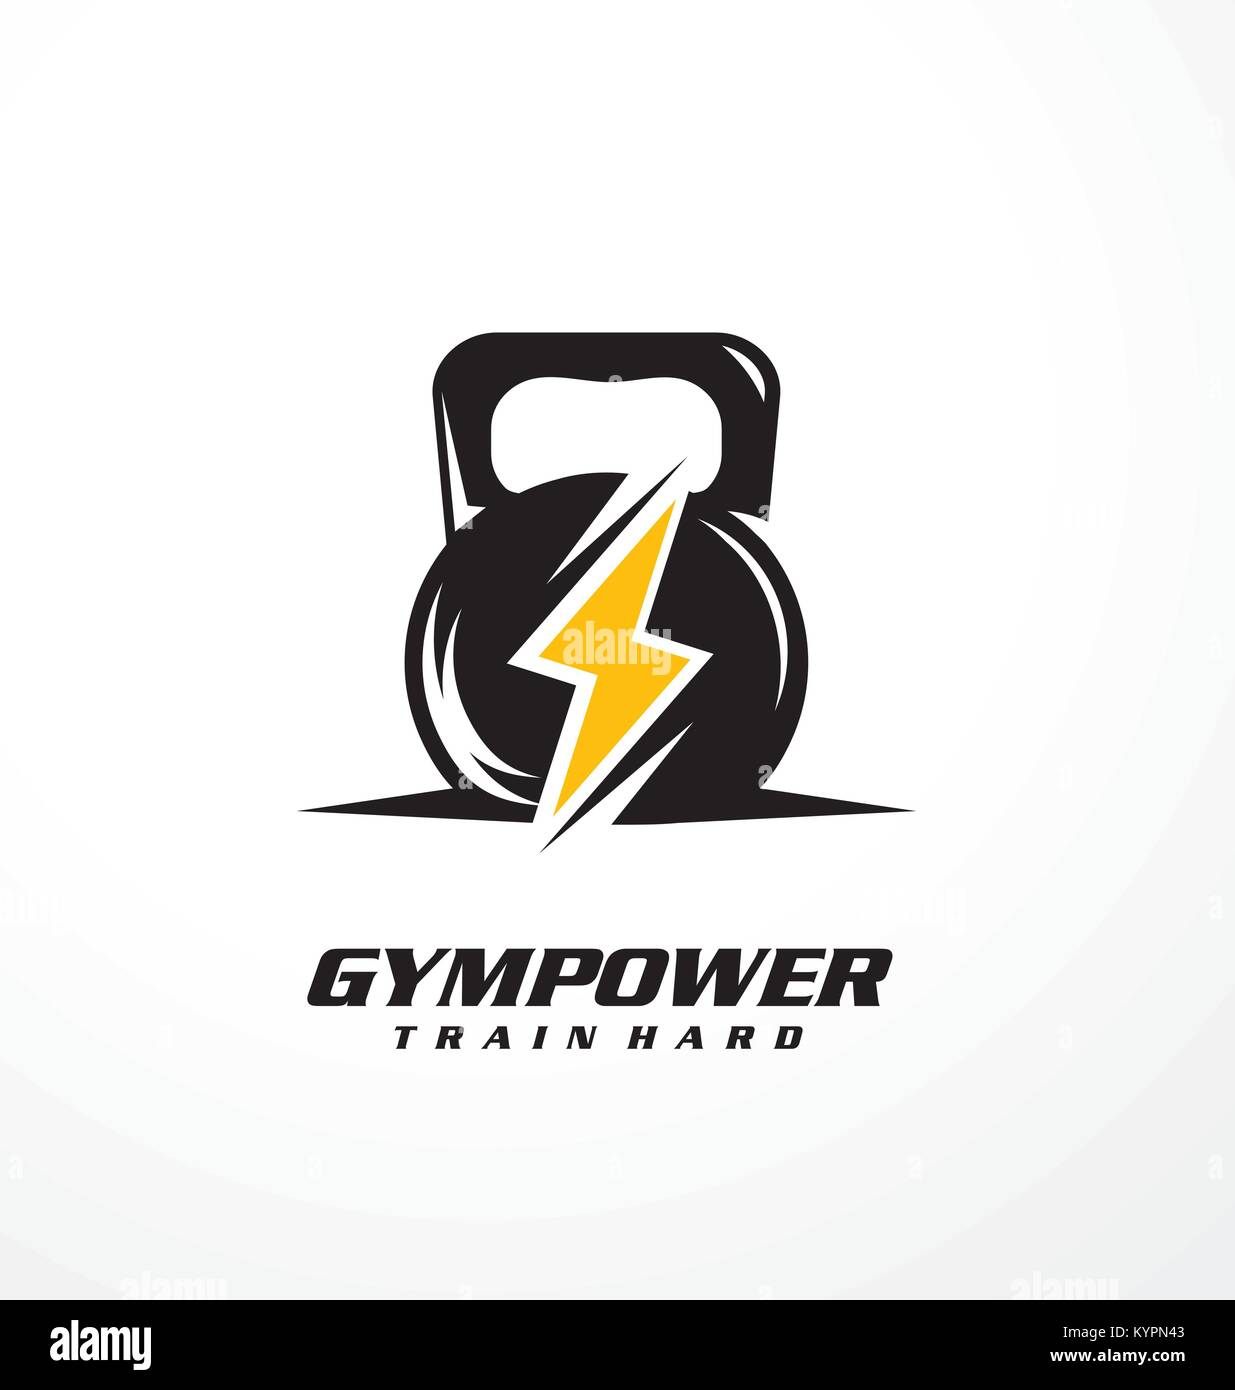 Gym power logo design idea with kettle bell and thunder ...